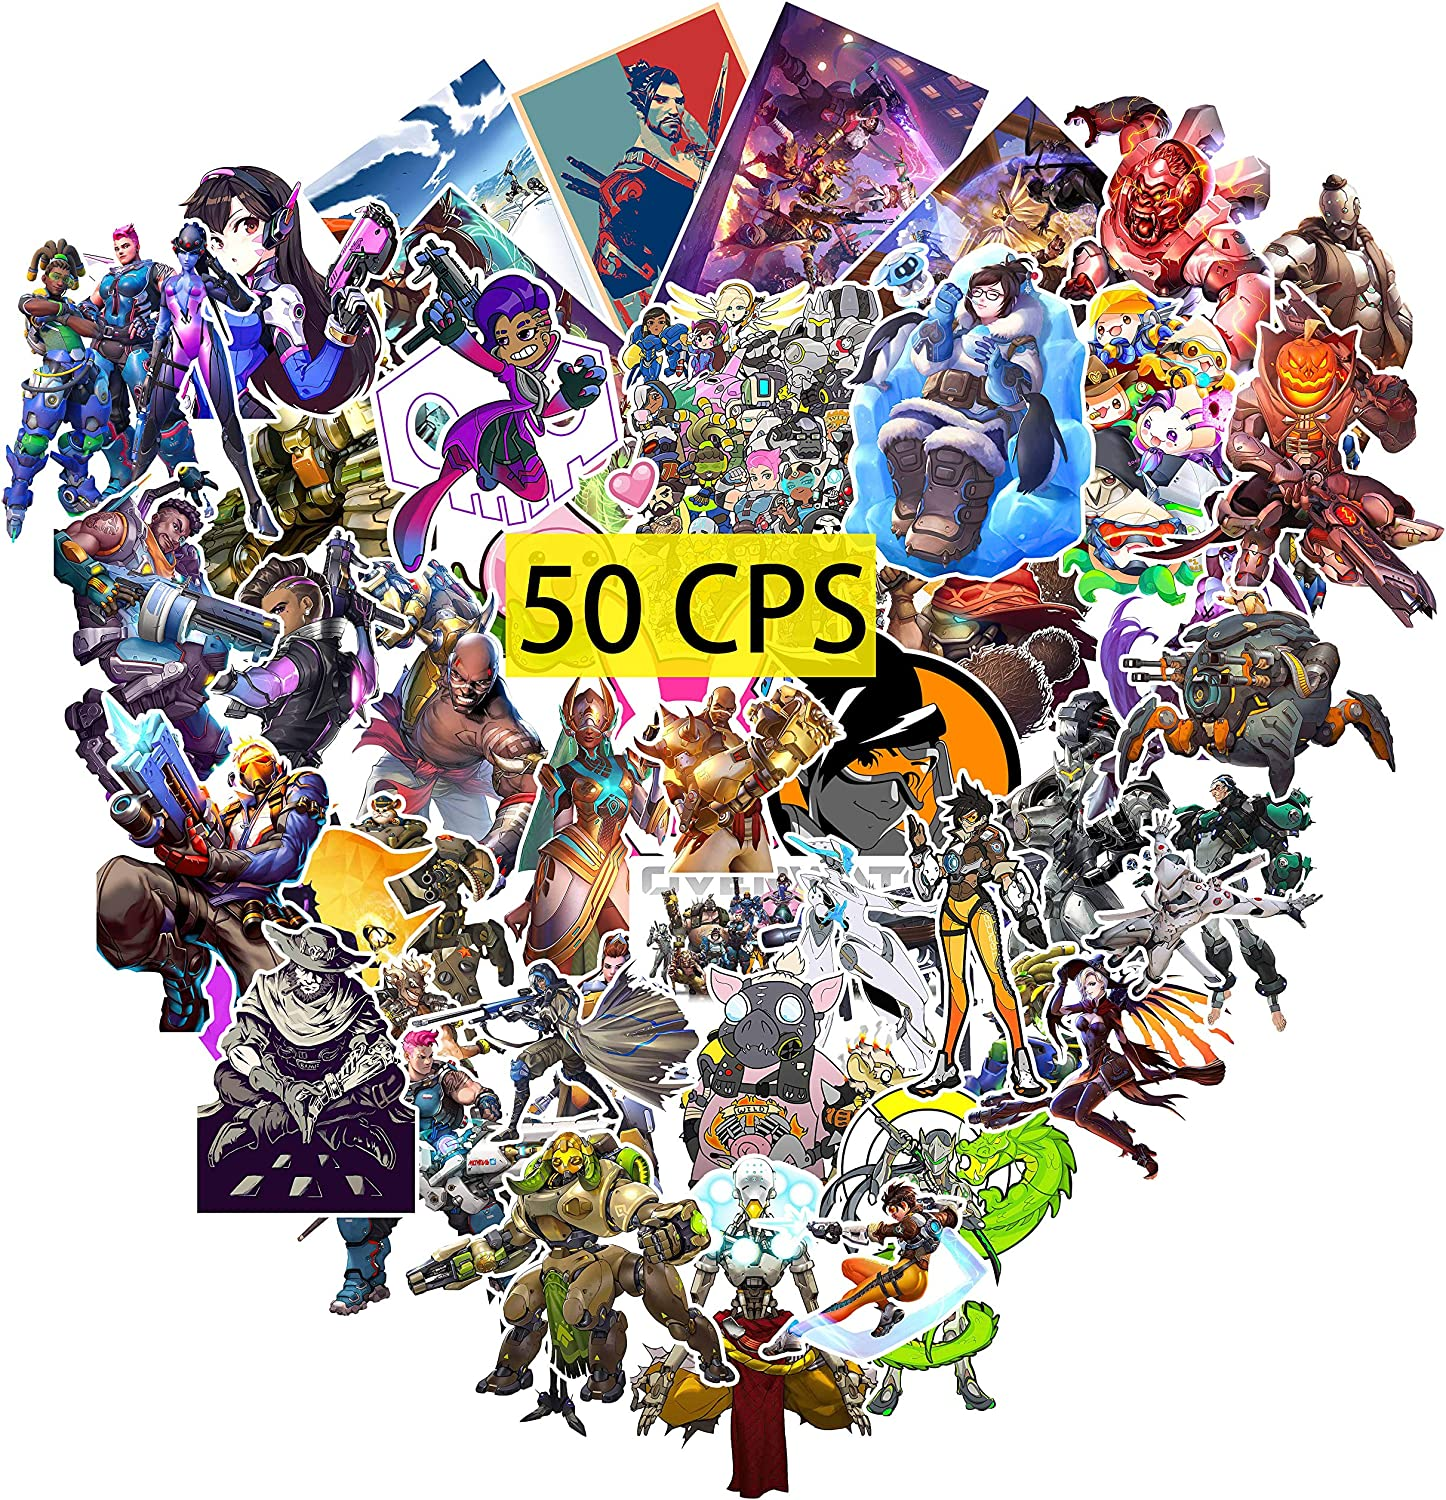 23. Overwatch Stickers (50Pcs Large Size) - Party Supplies